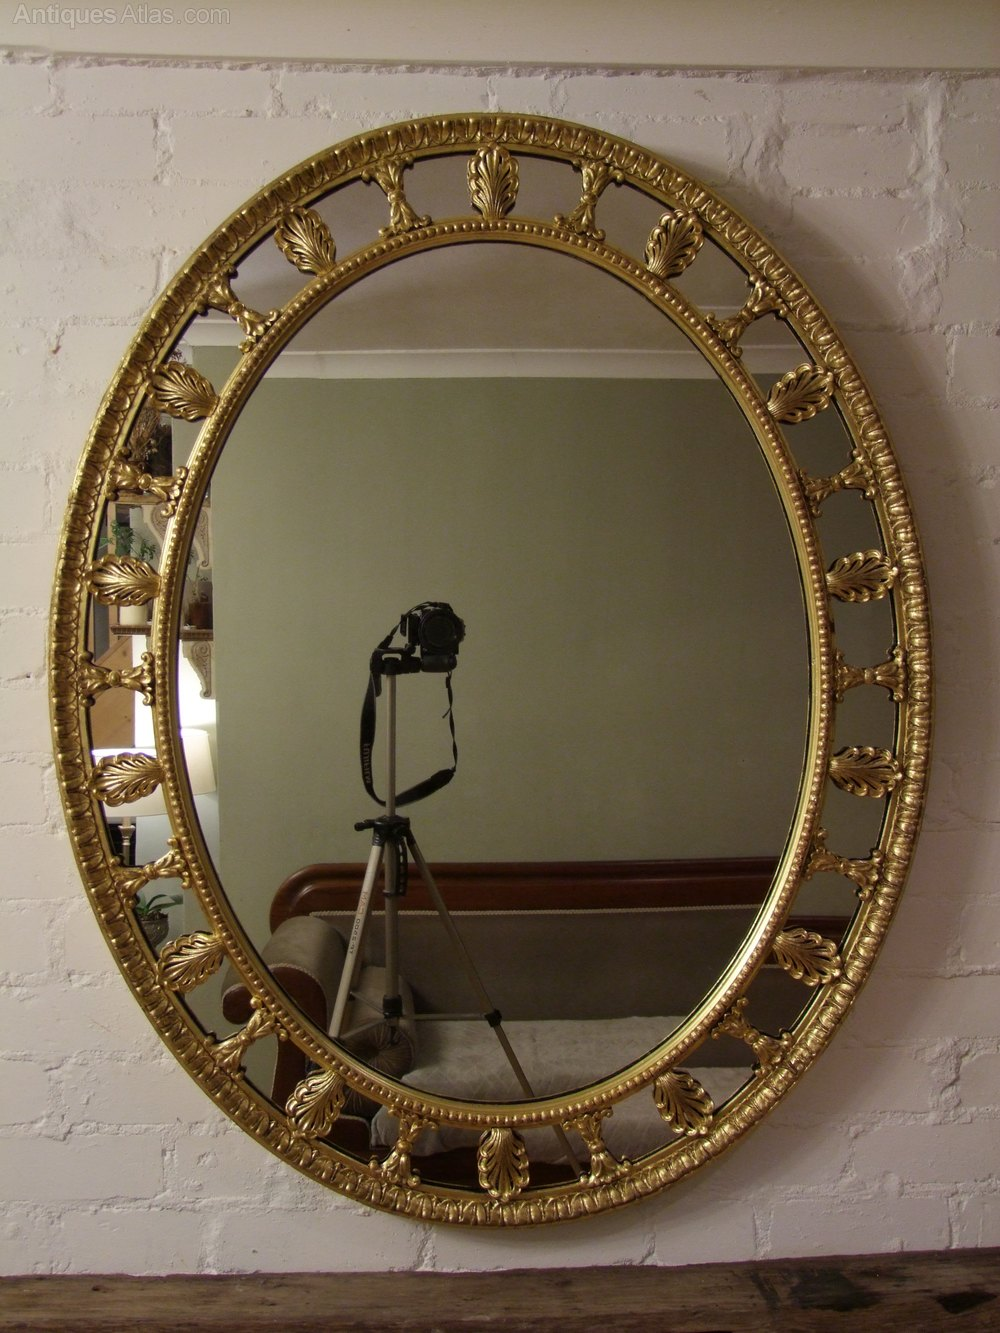 Antiques atlas english gilt wall mirror george iii style for What is a gilt mirror